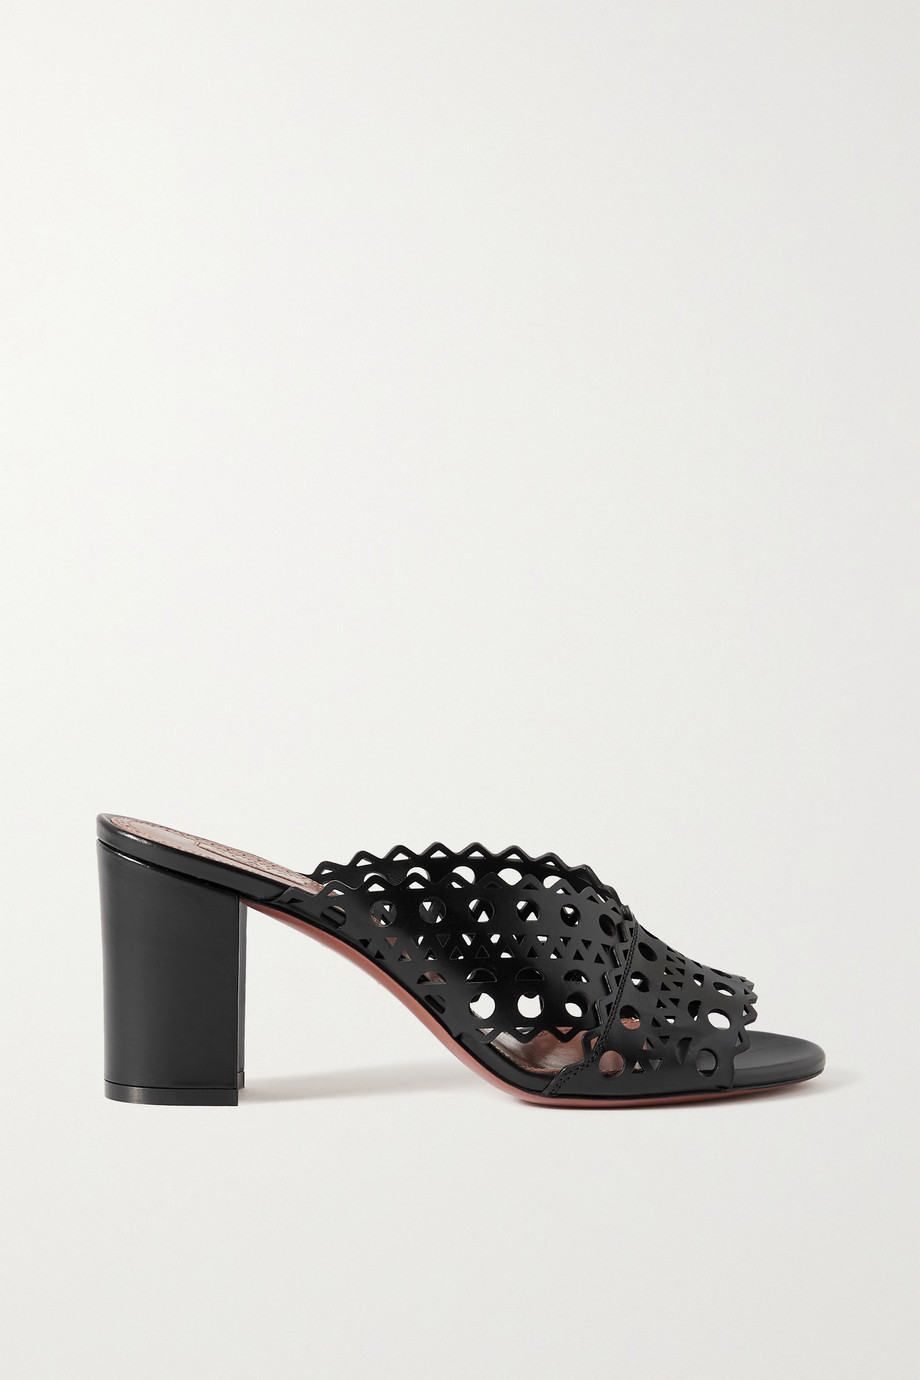 Alaïa 75 laser-cut leather sandals